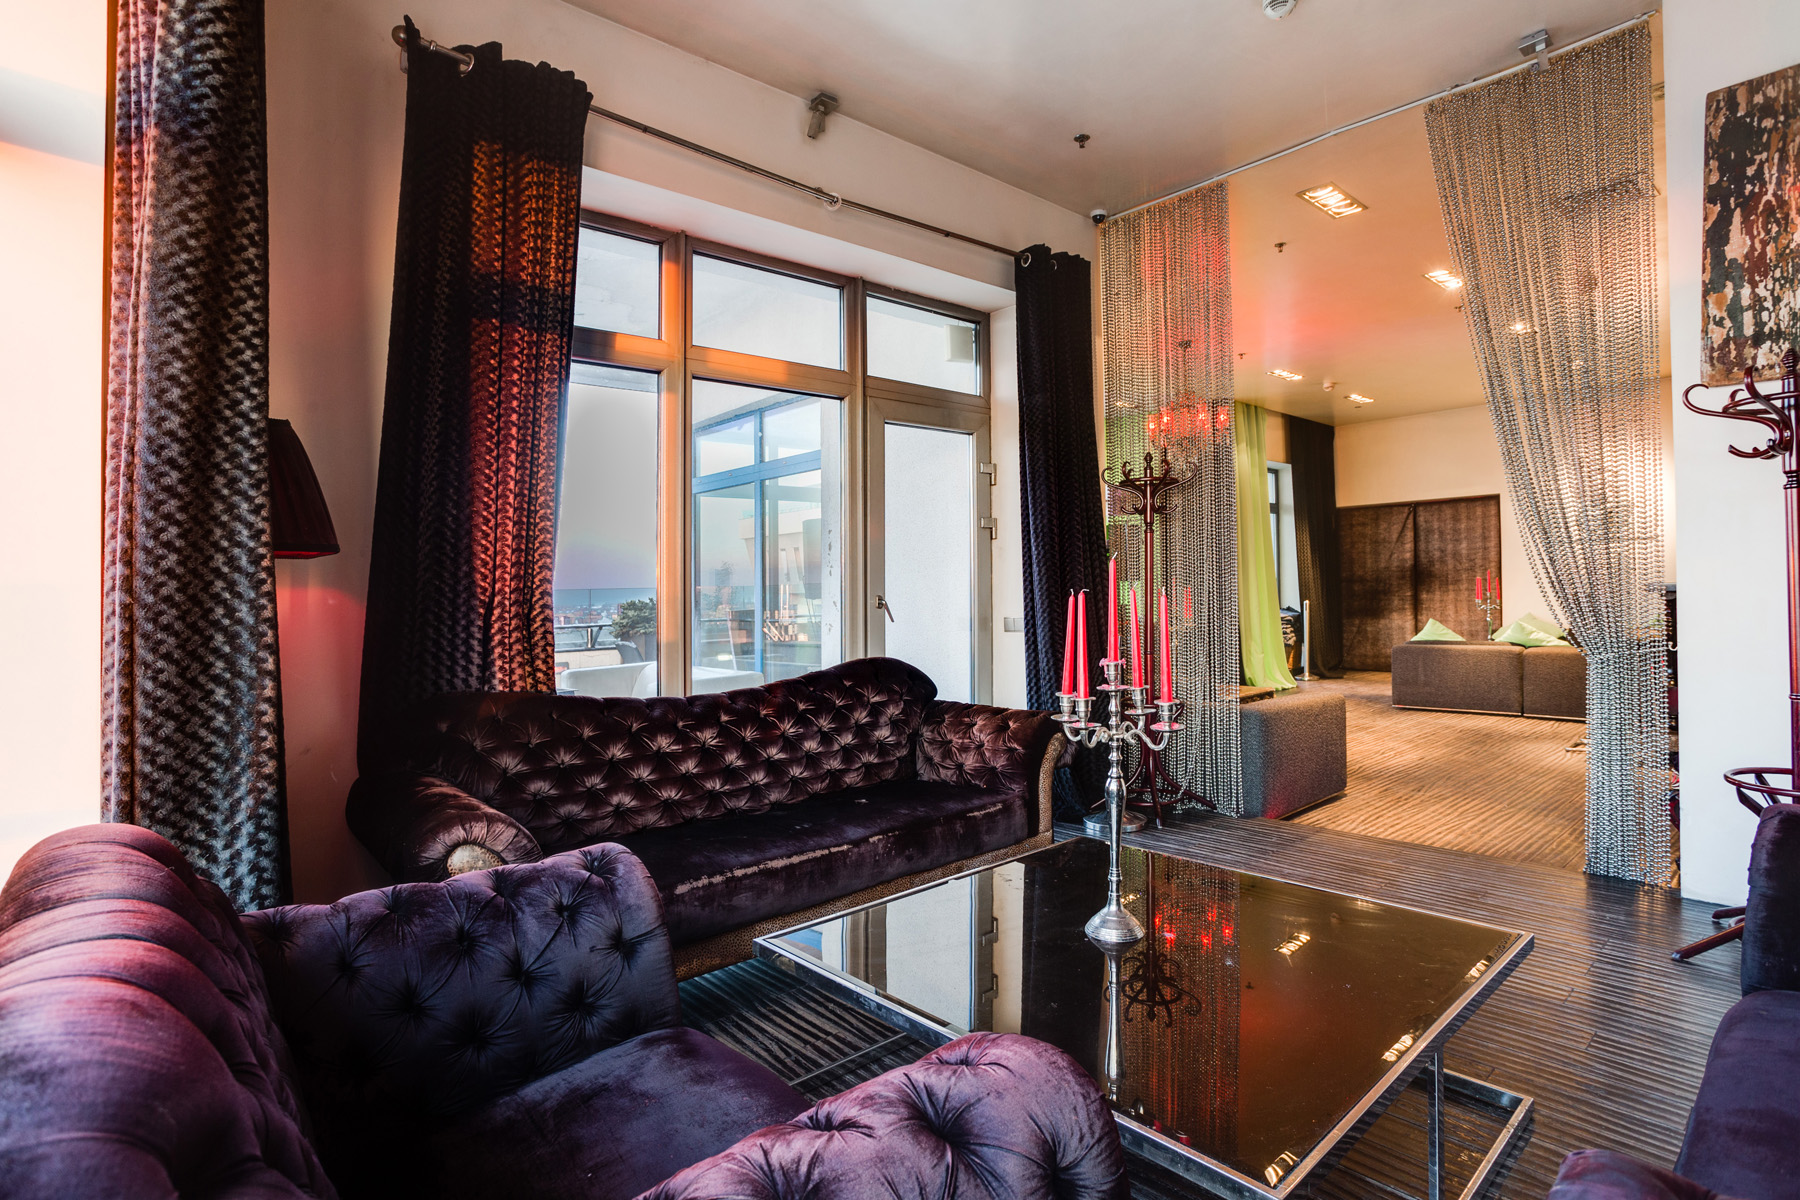 Apartments için Kiralama at Penthouse 290 sq.m. in the Residential Complex Vorobyovy Gory Moscow, Moskova Rusya